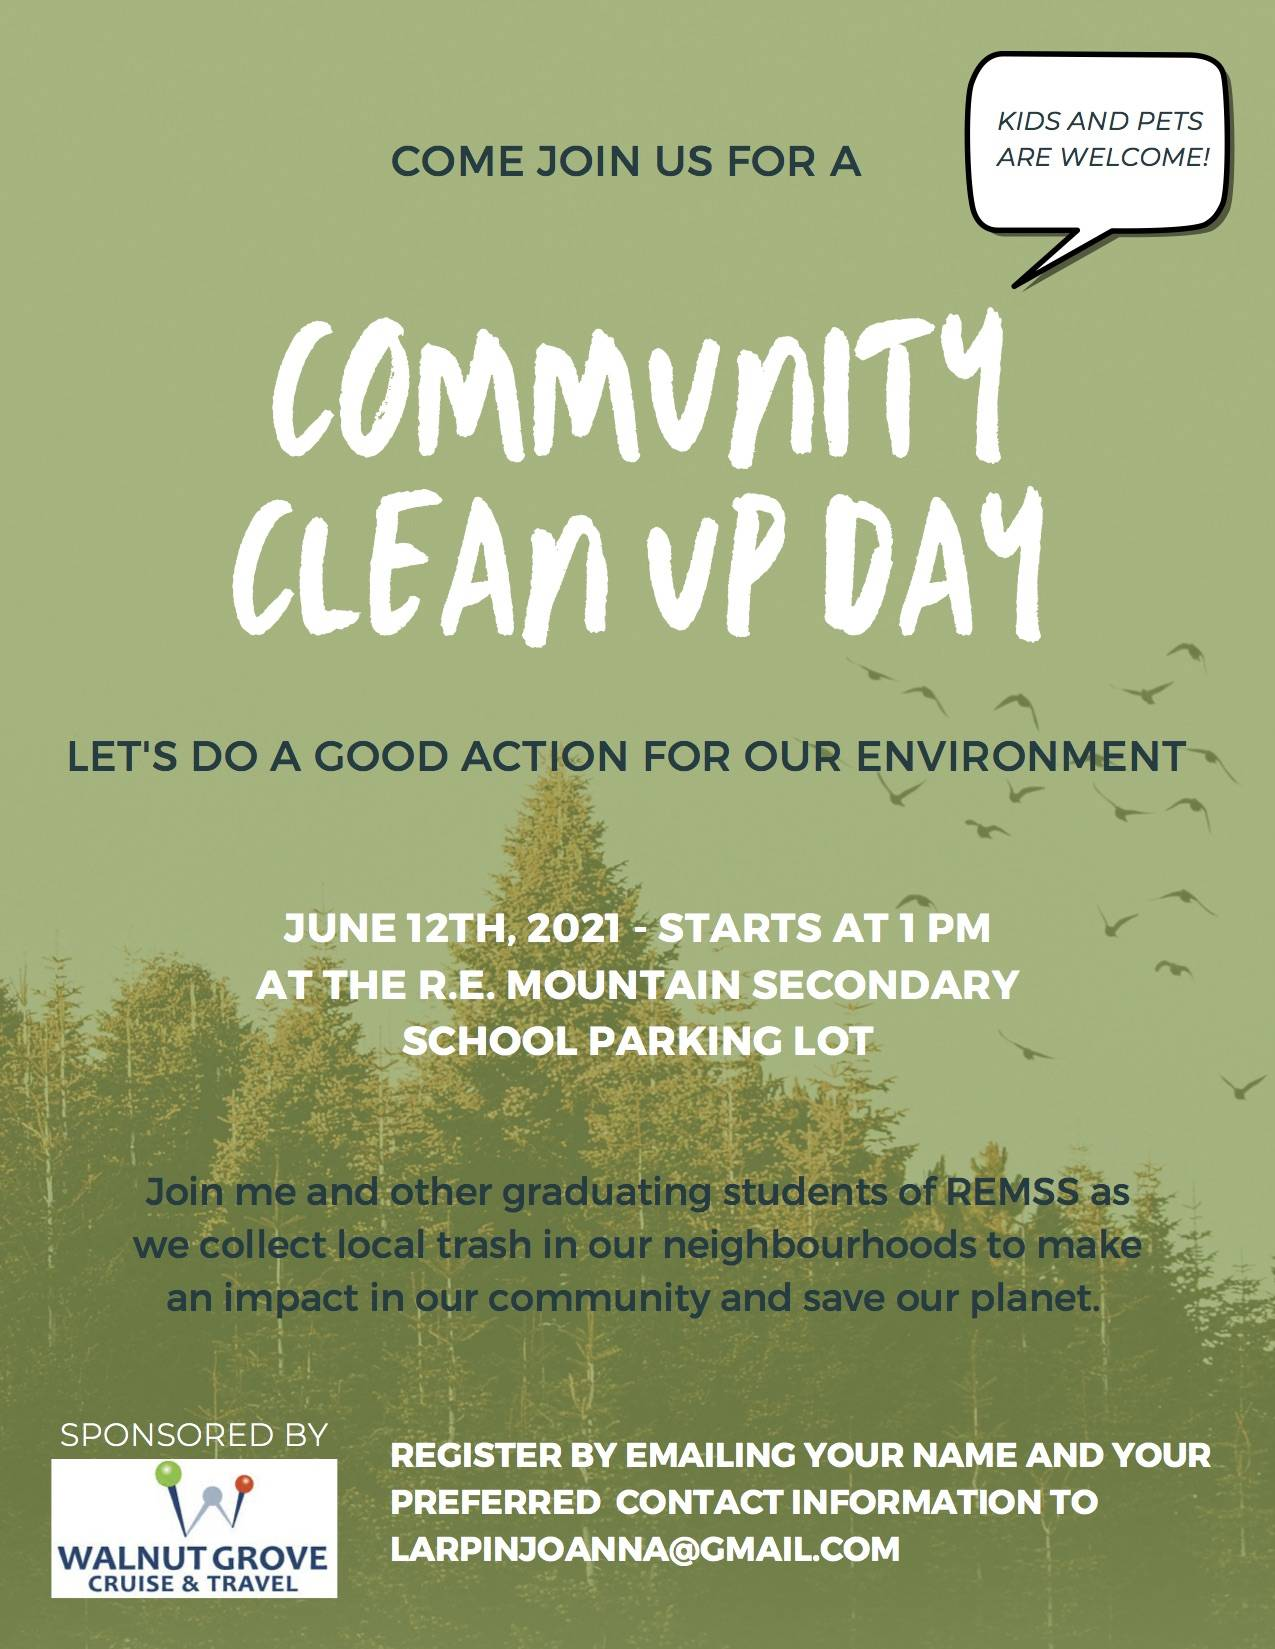 A Grade 12 R.E. Mountain Secondary School student has organized a community clean-up for June 12, 2021. (Special to Langley Advance Times)